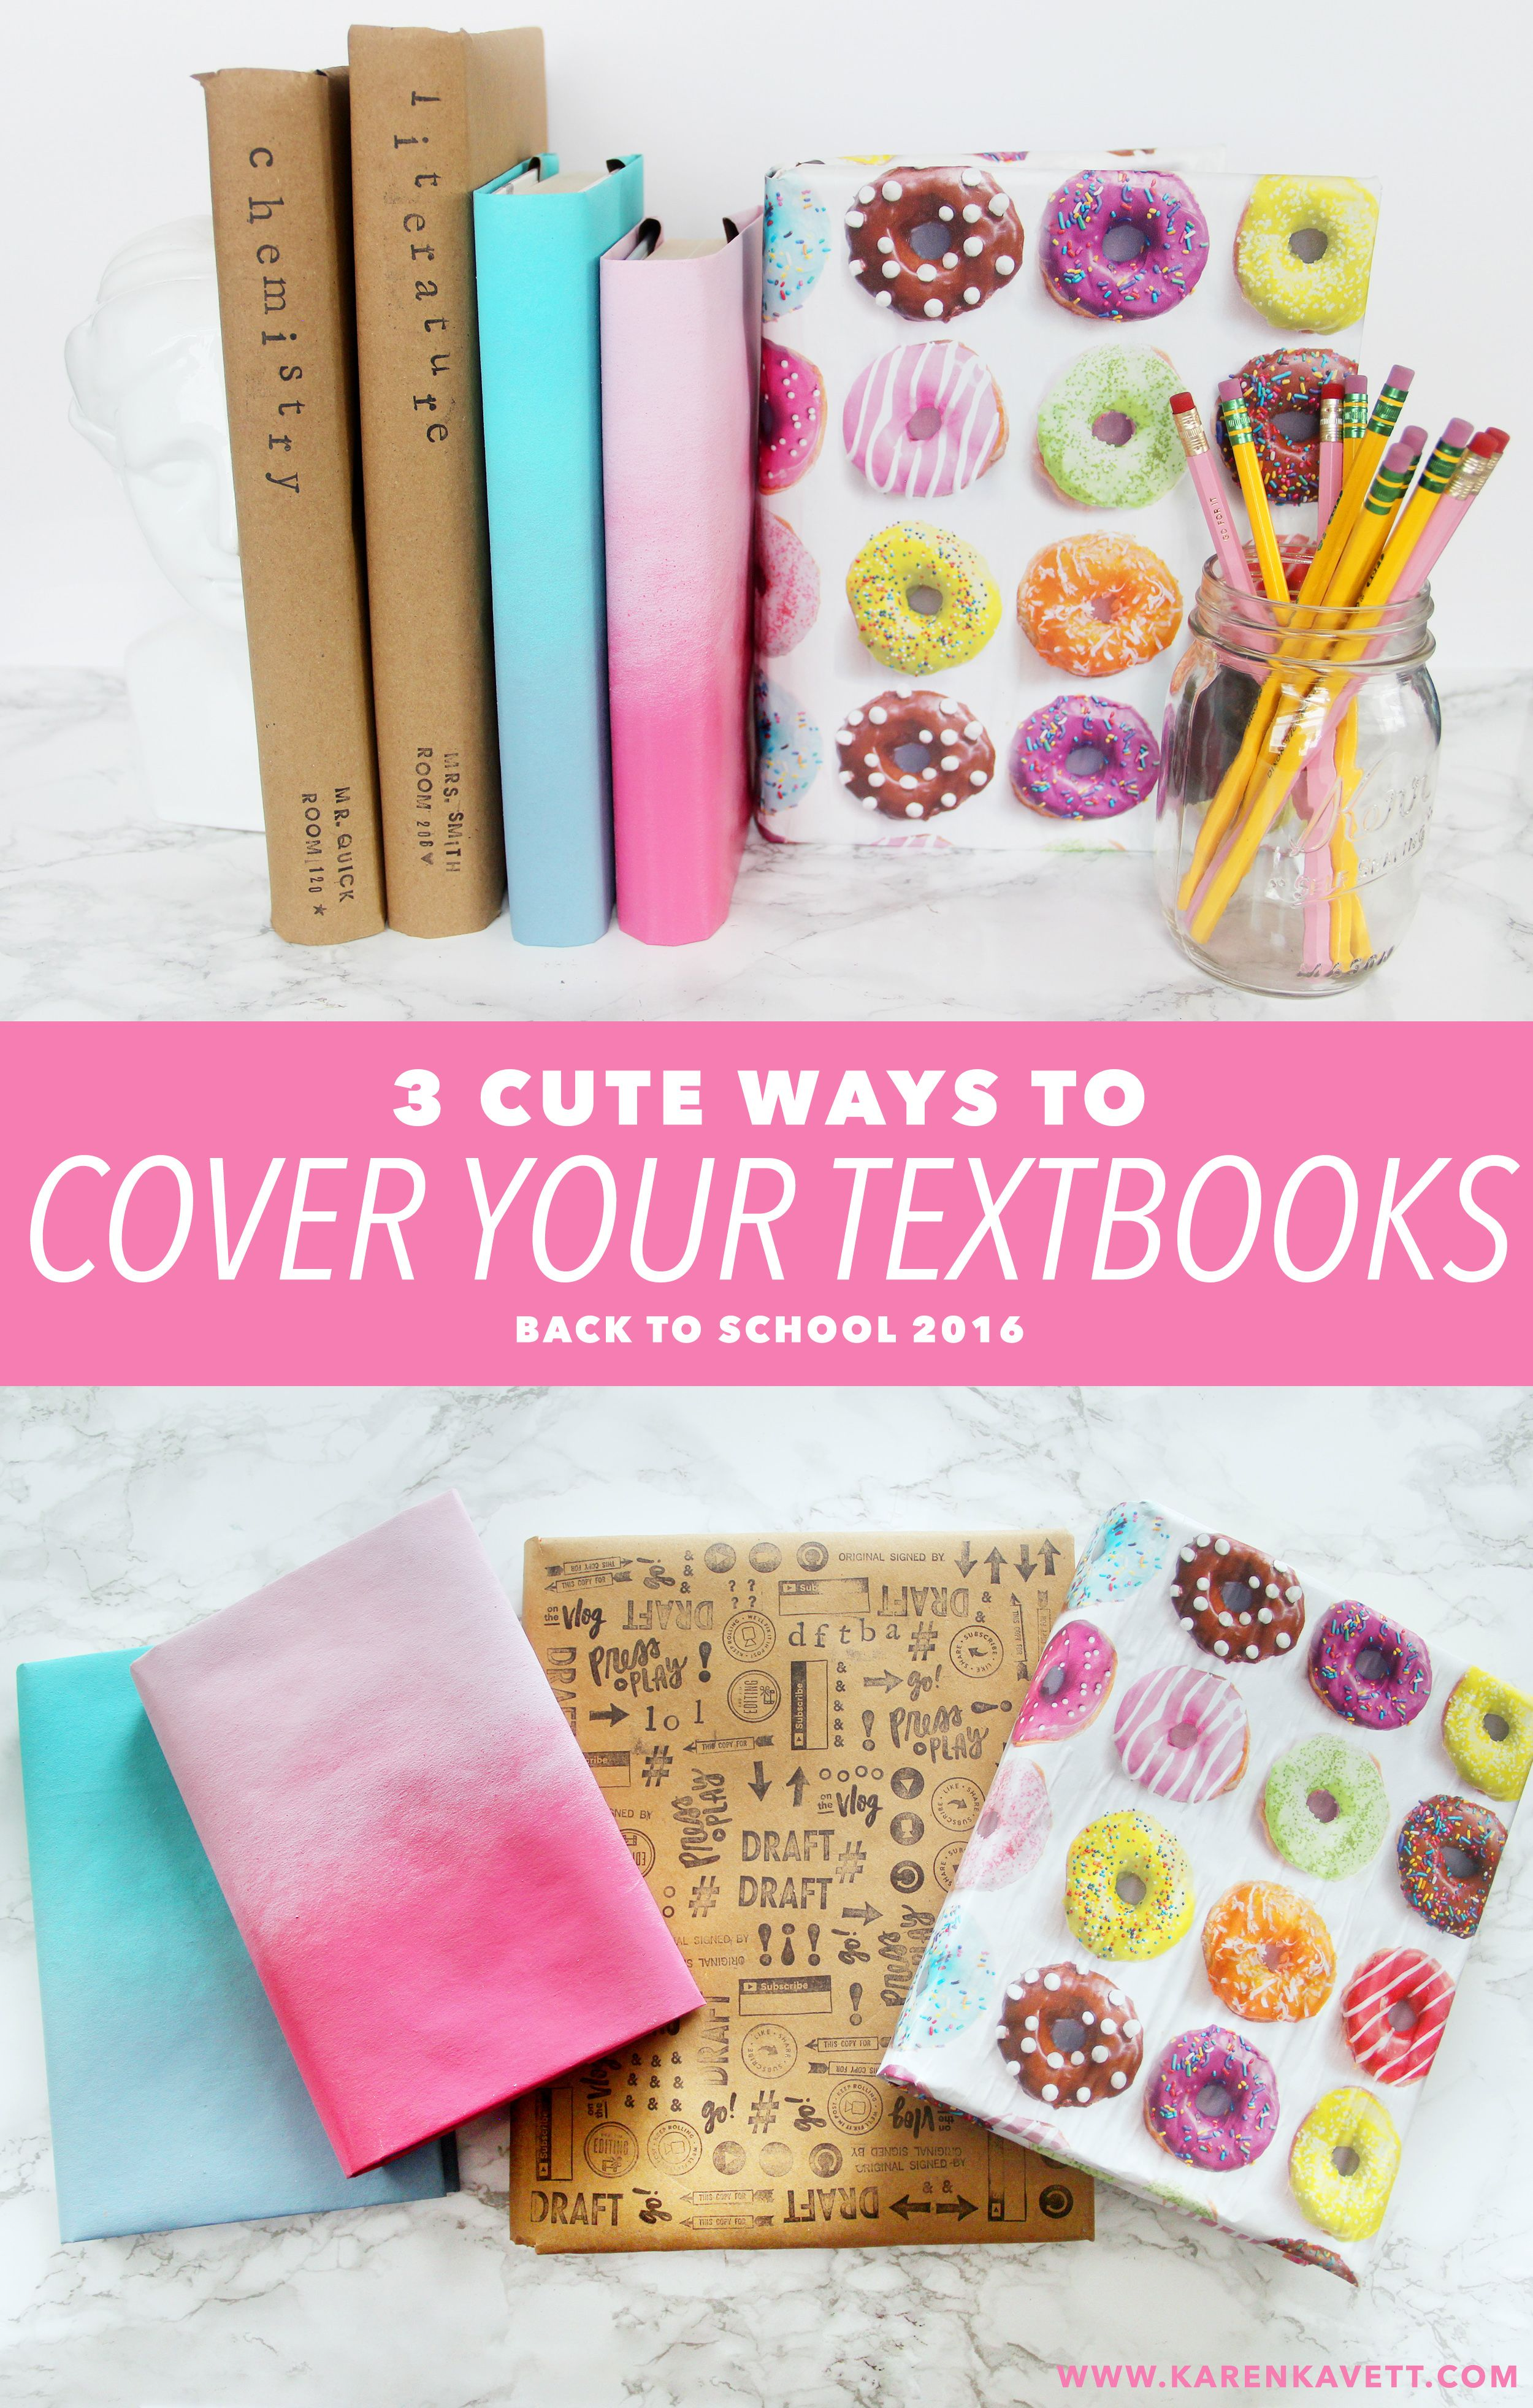 DIY Cute Back to School Textbook Covers |